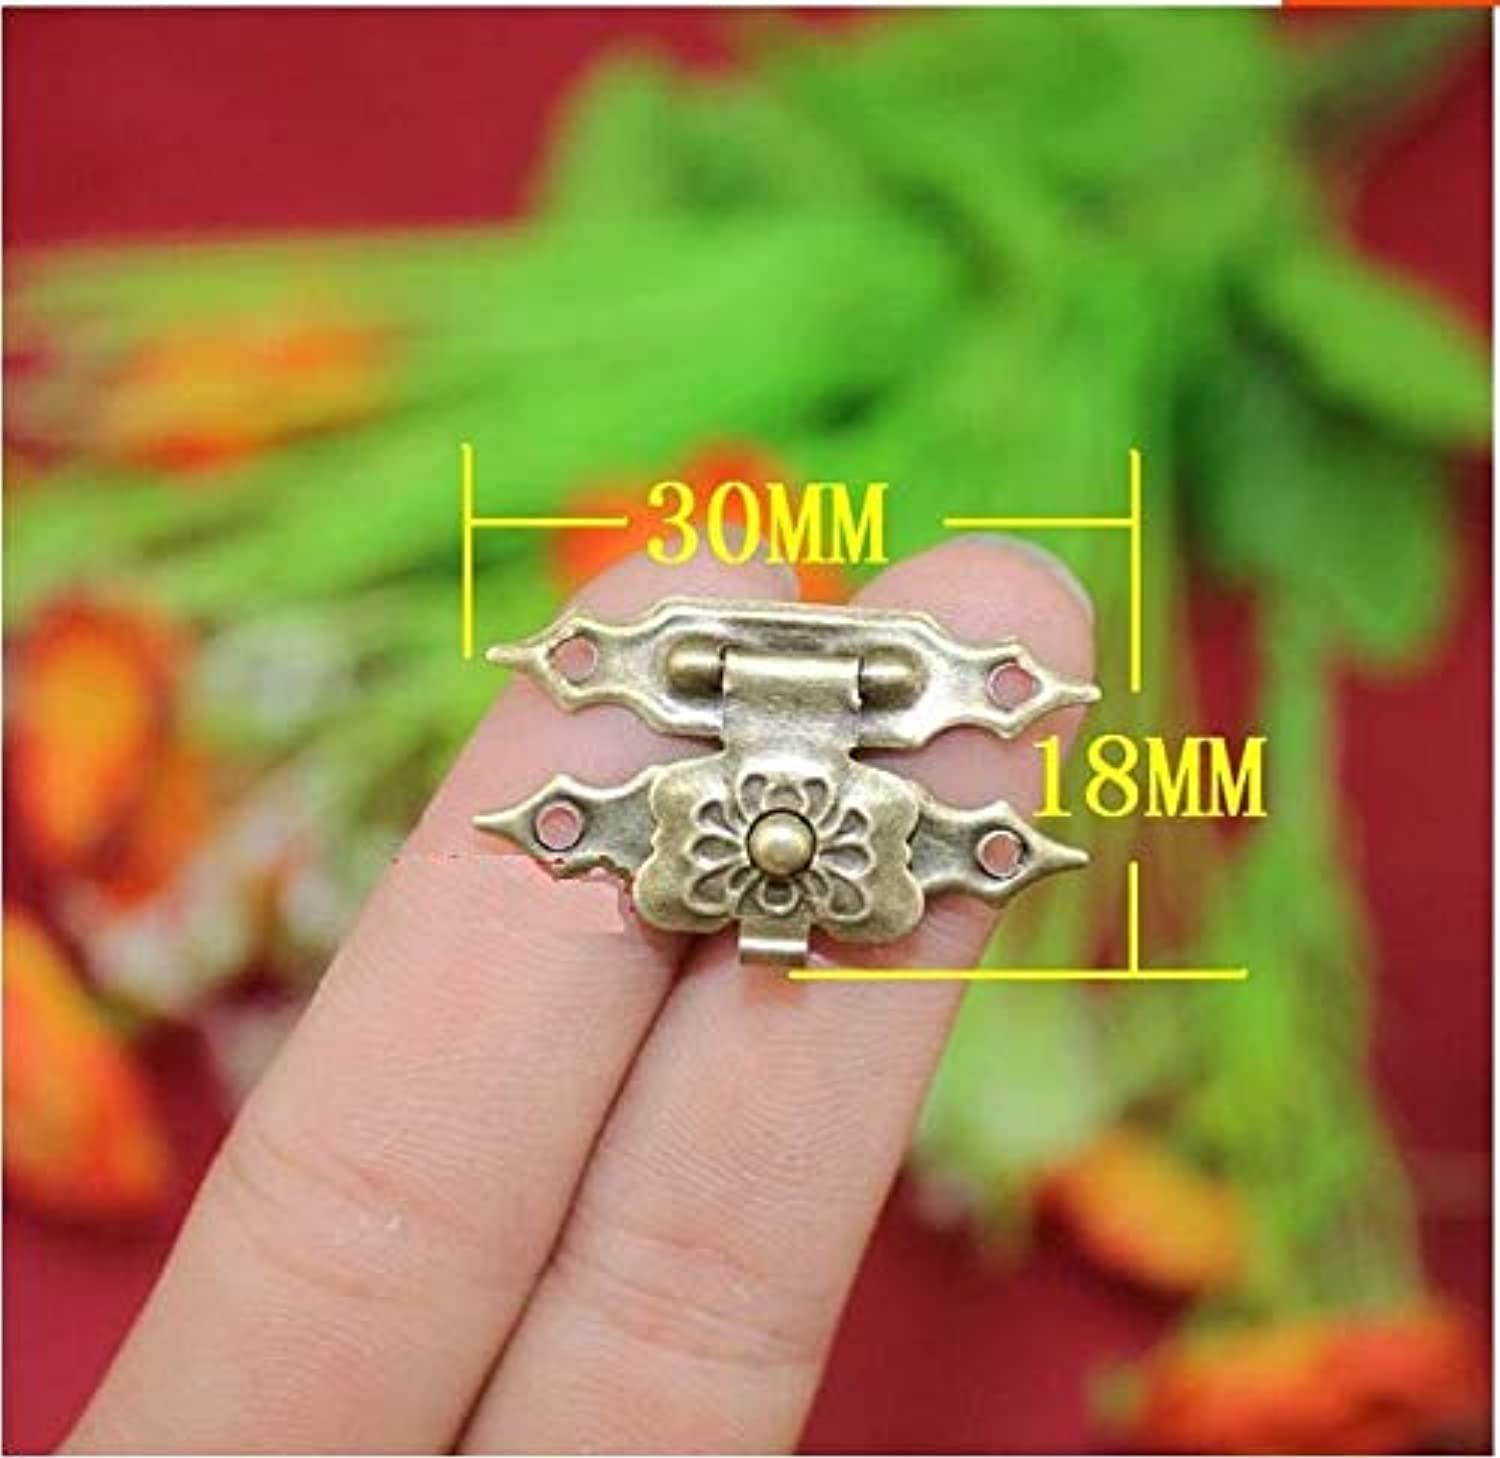 Ping 50pcs lot Antique Metal Buckle Wooden Gift Box Buckle Flower Buckle Decorative Gadget Product Name  Flower Buckle